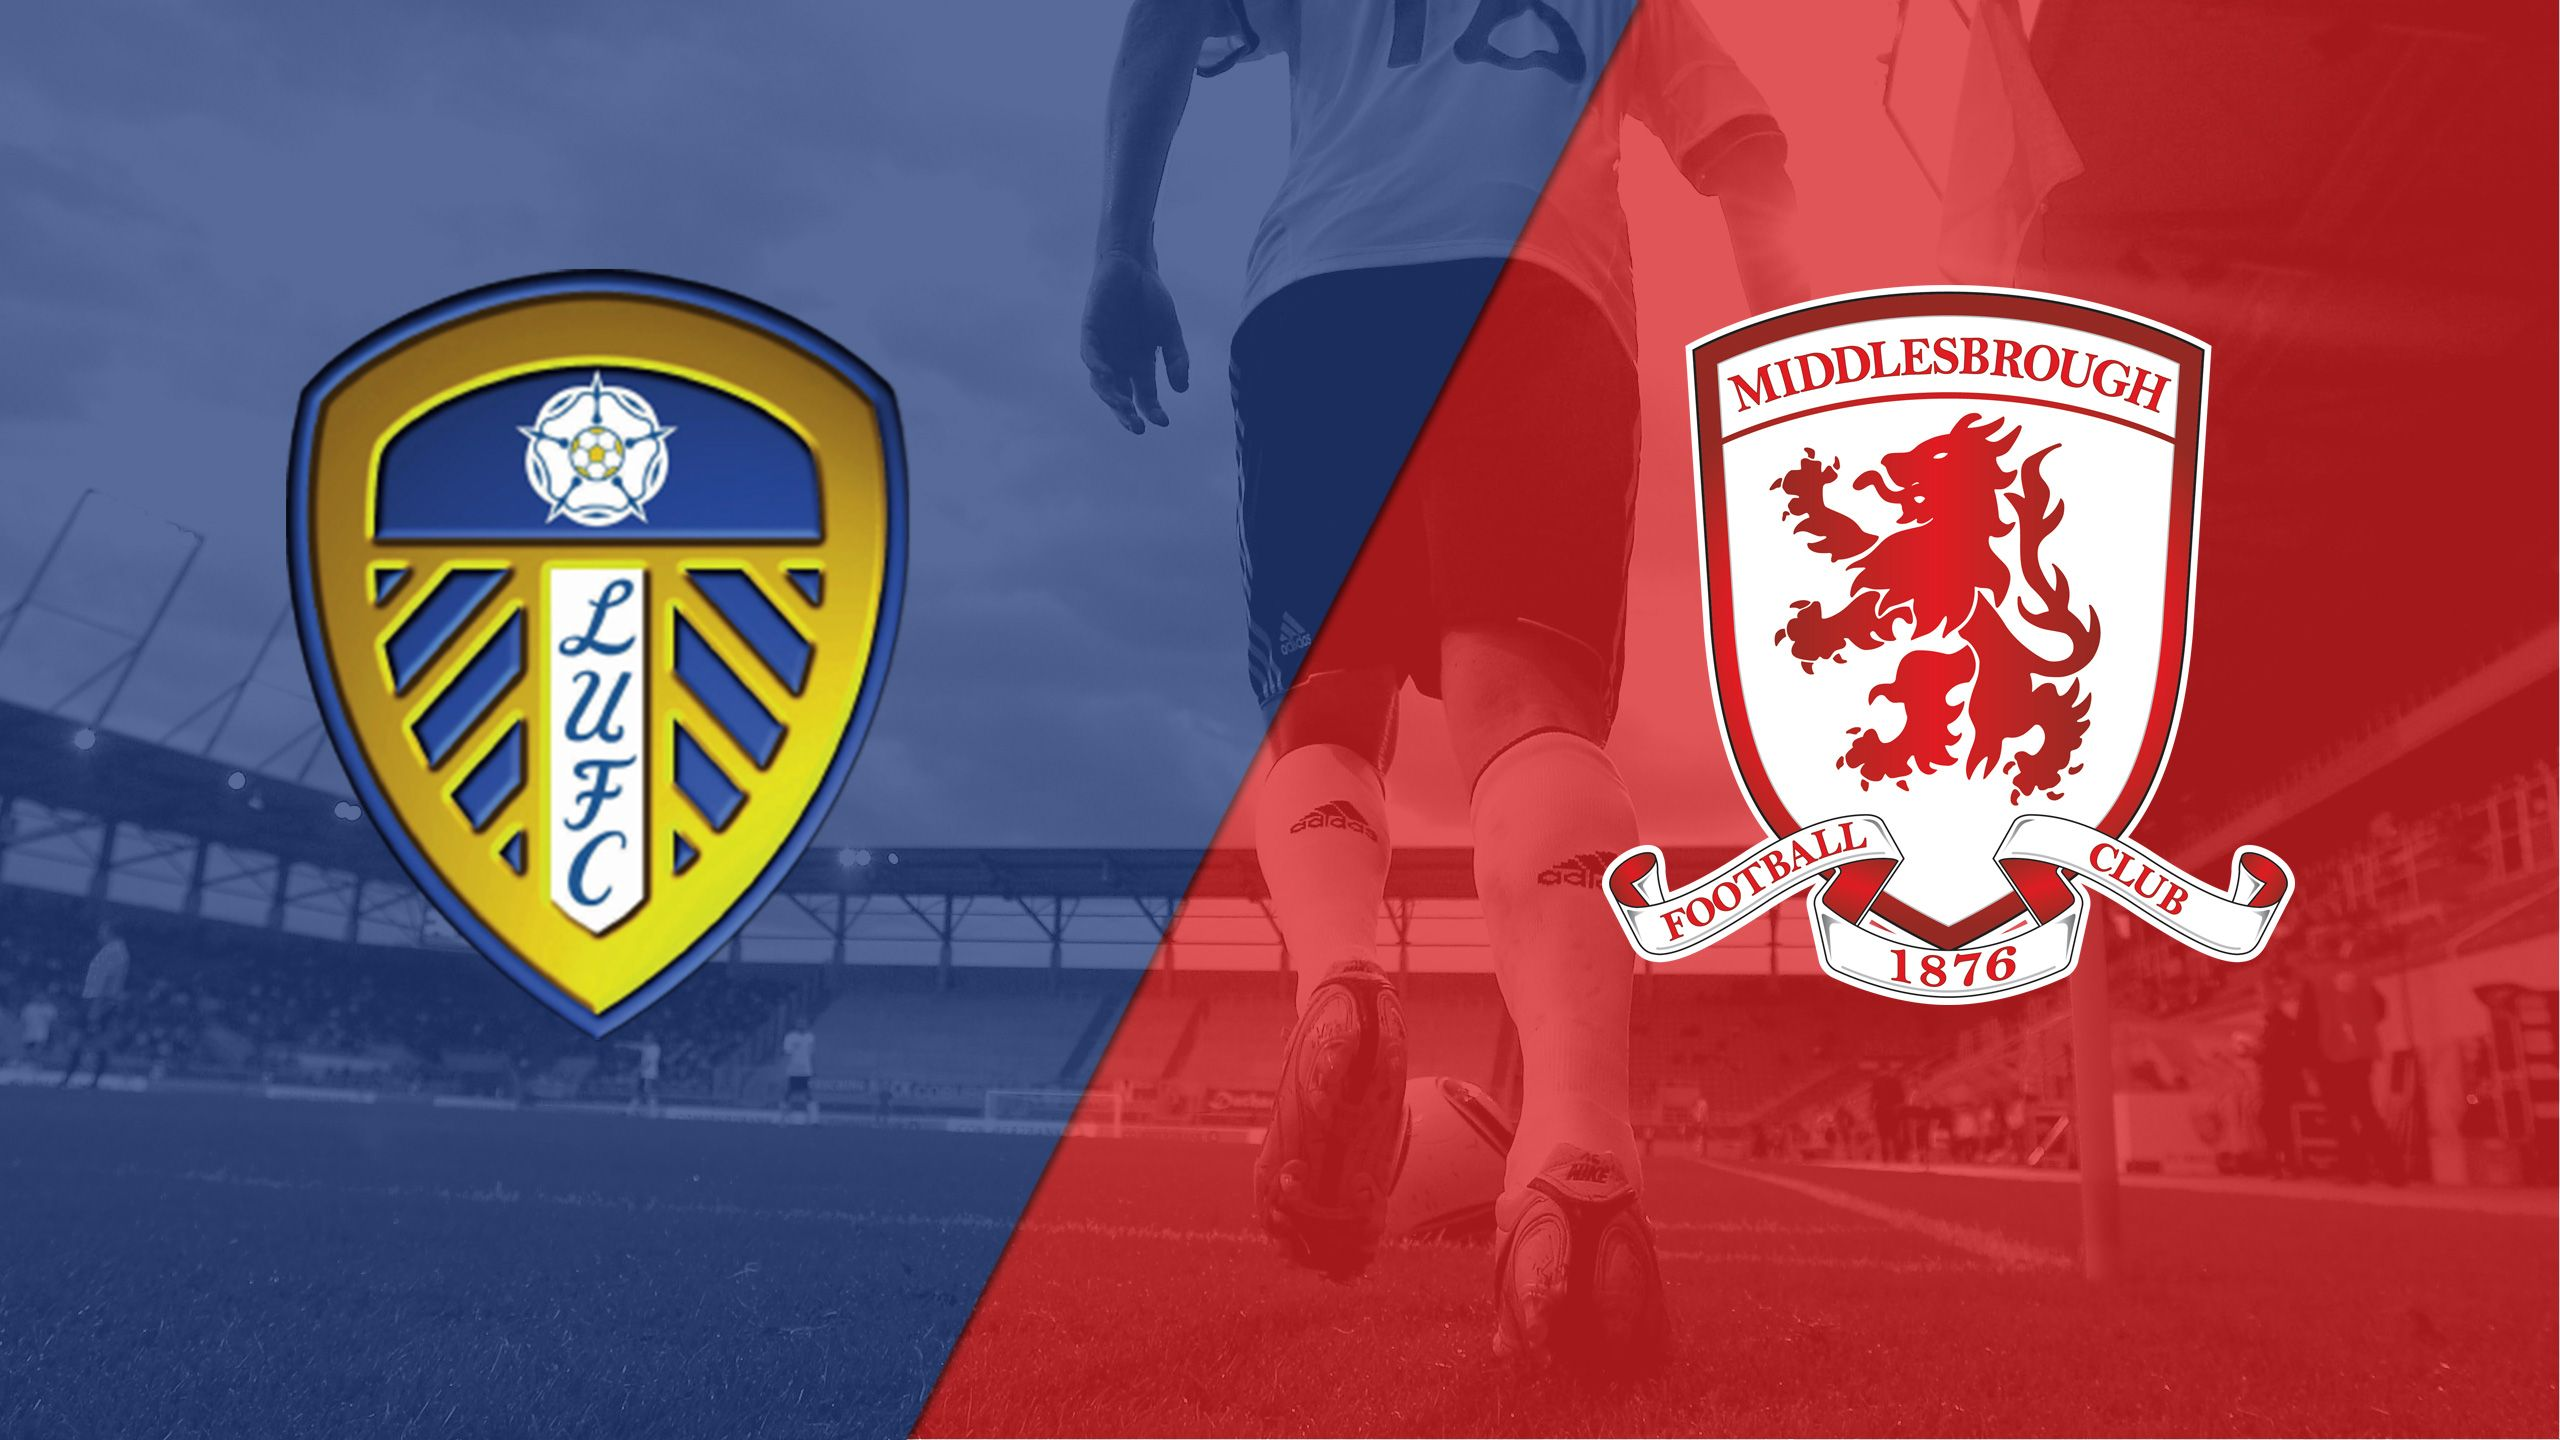 Leeds United vs. Middlesbrough (English League Championship)